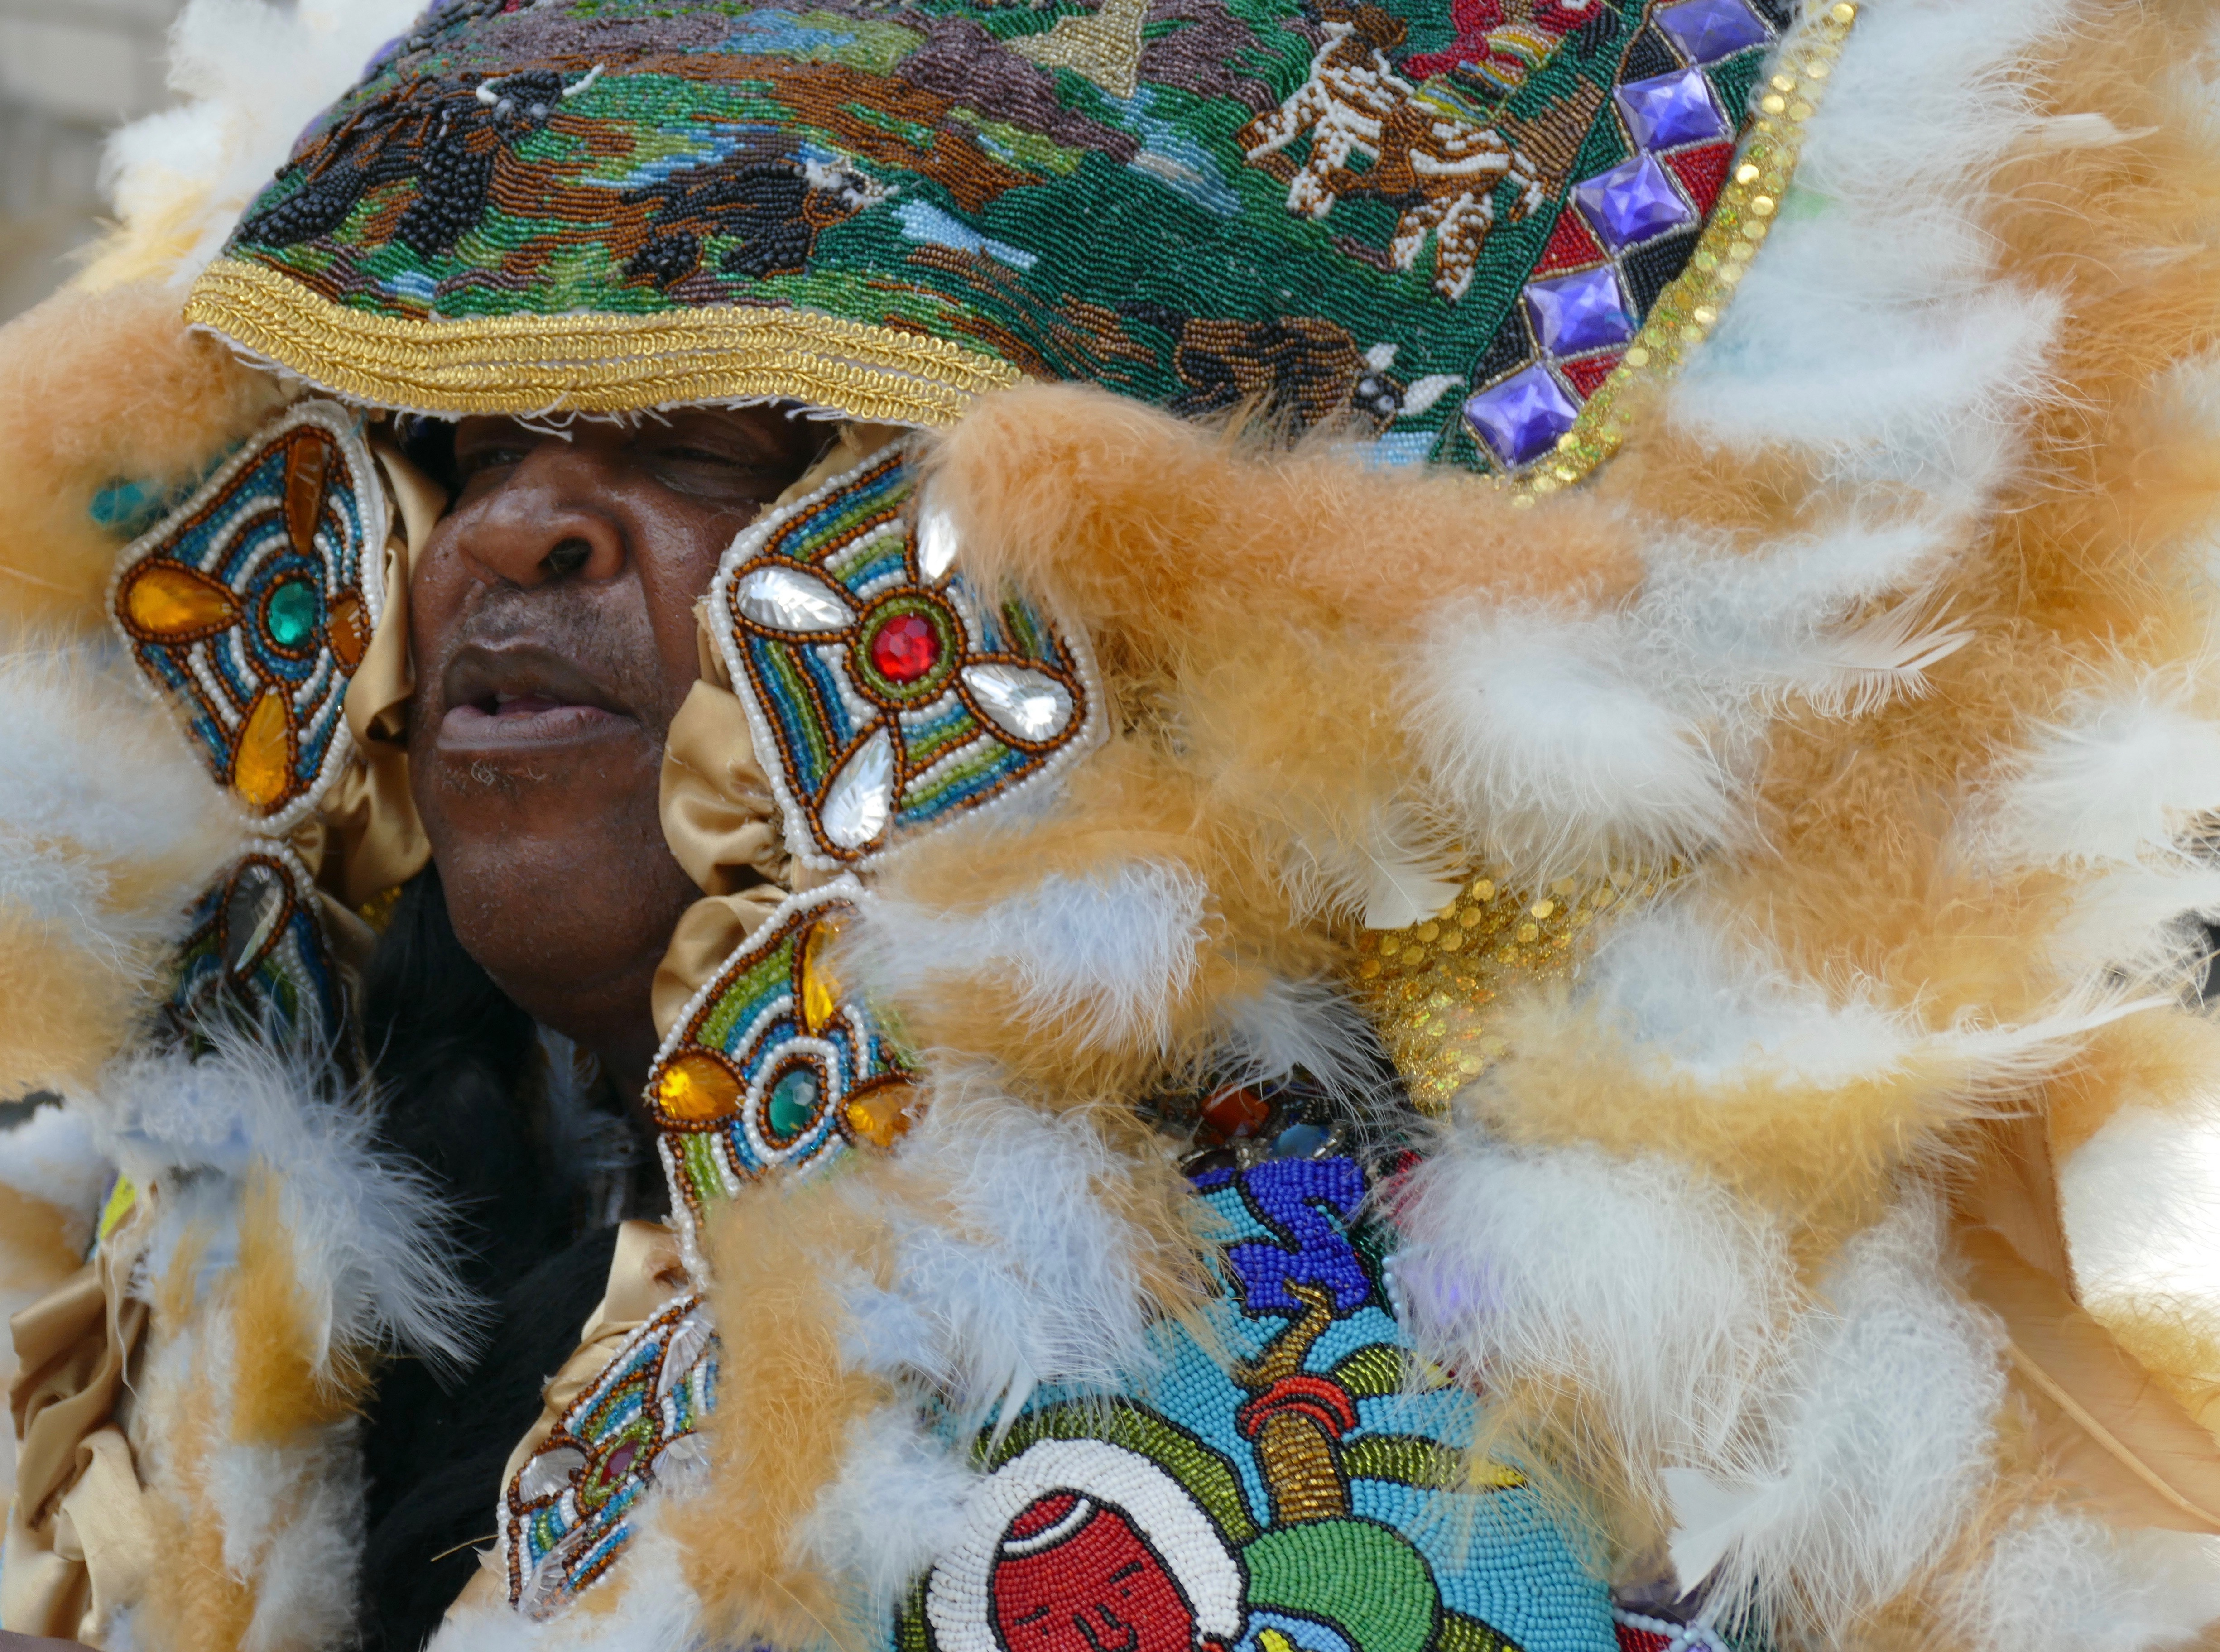 Big Chief in New Orleans